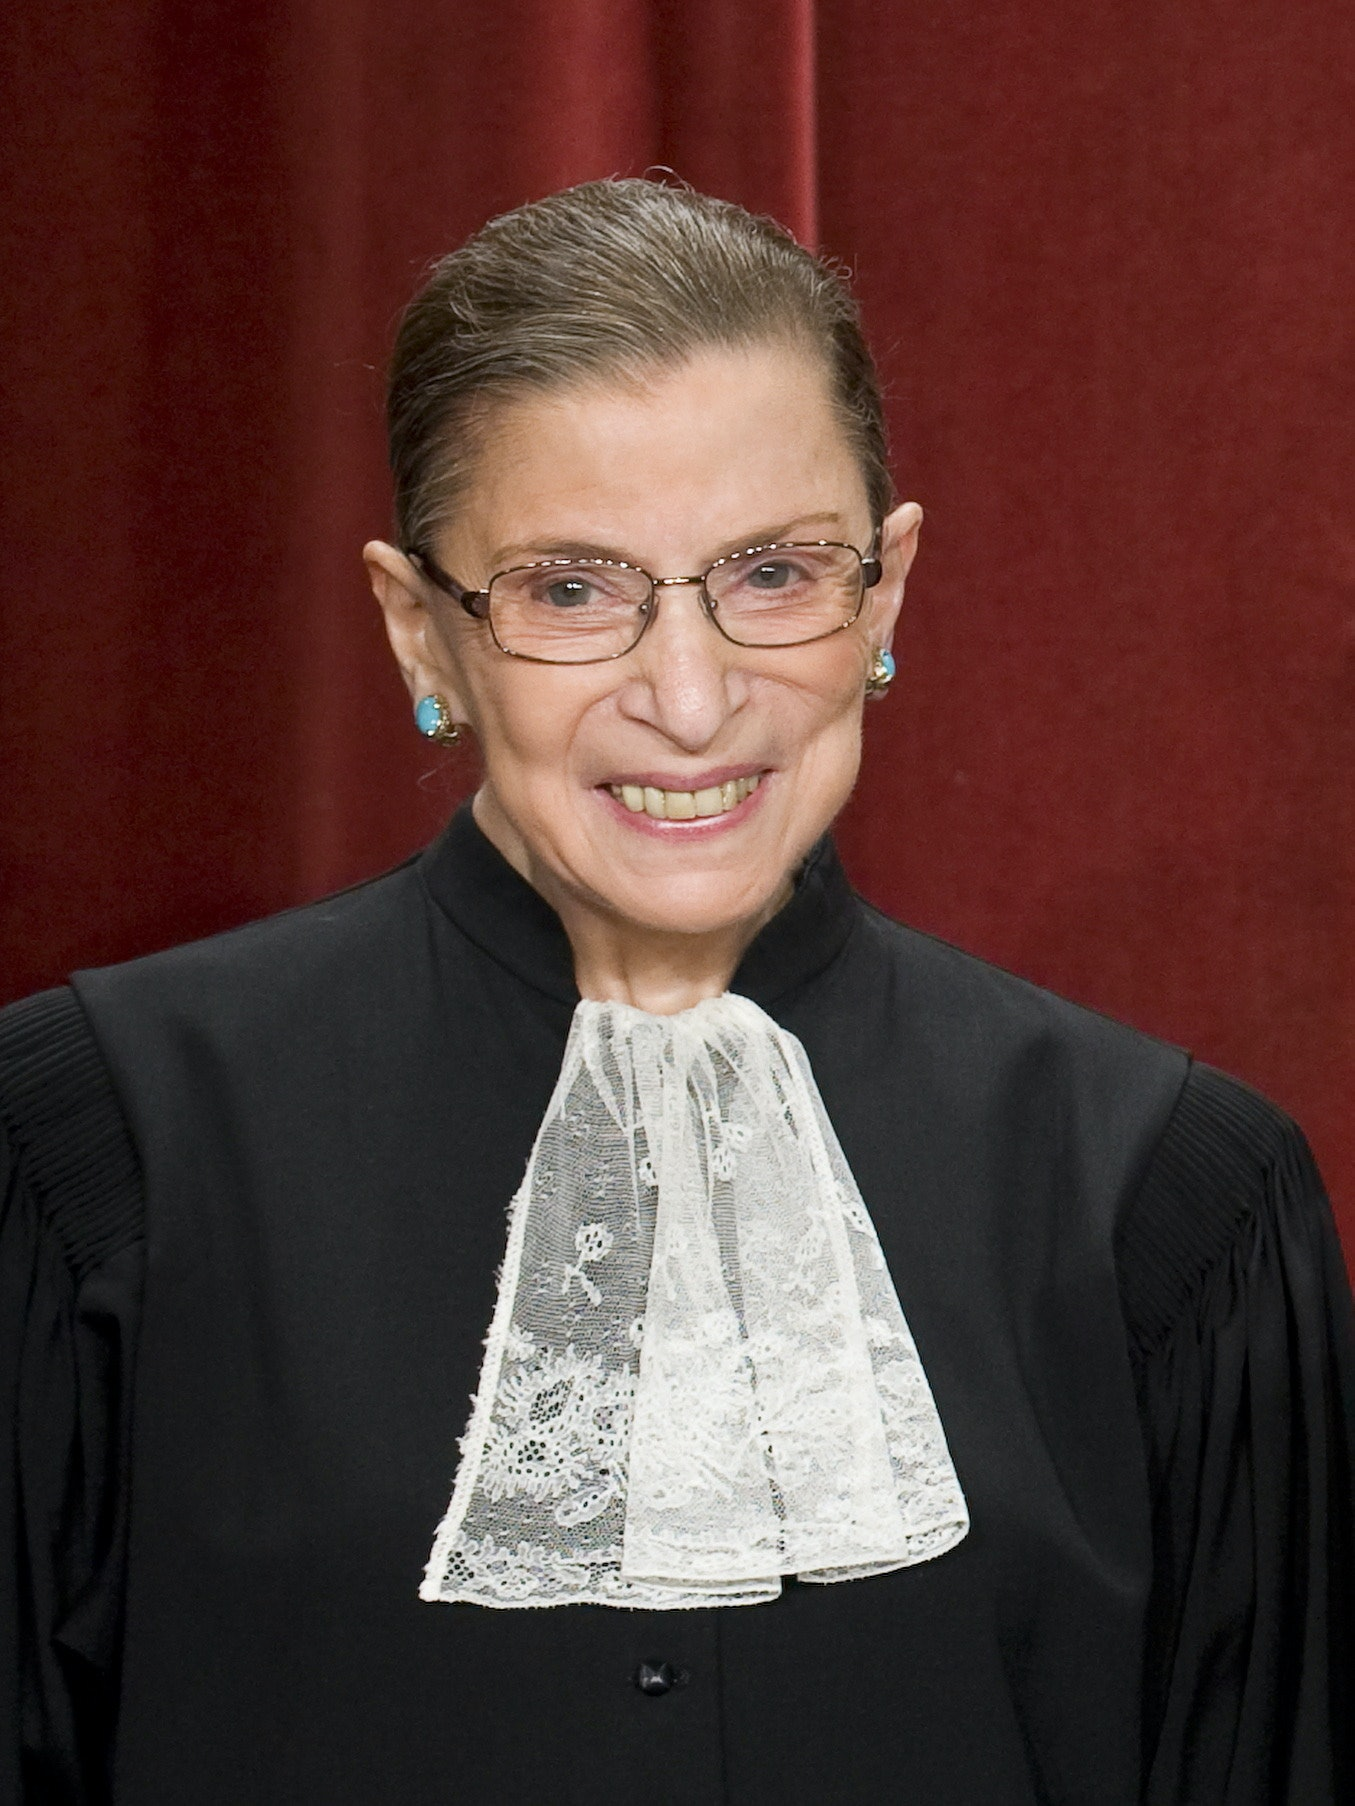 What Do Ruth Bader Ginsburg's Collars Mean? Each One Has A Special ...